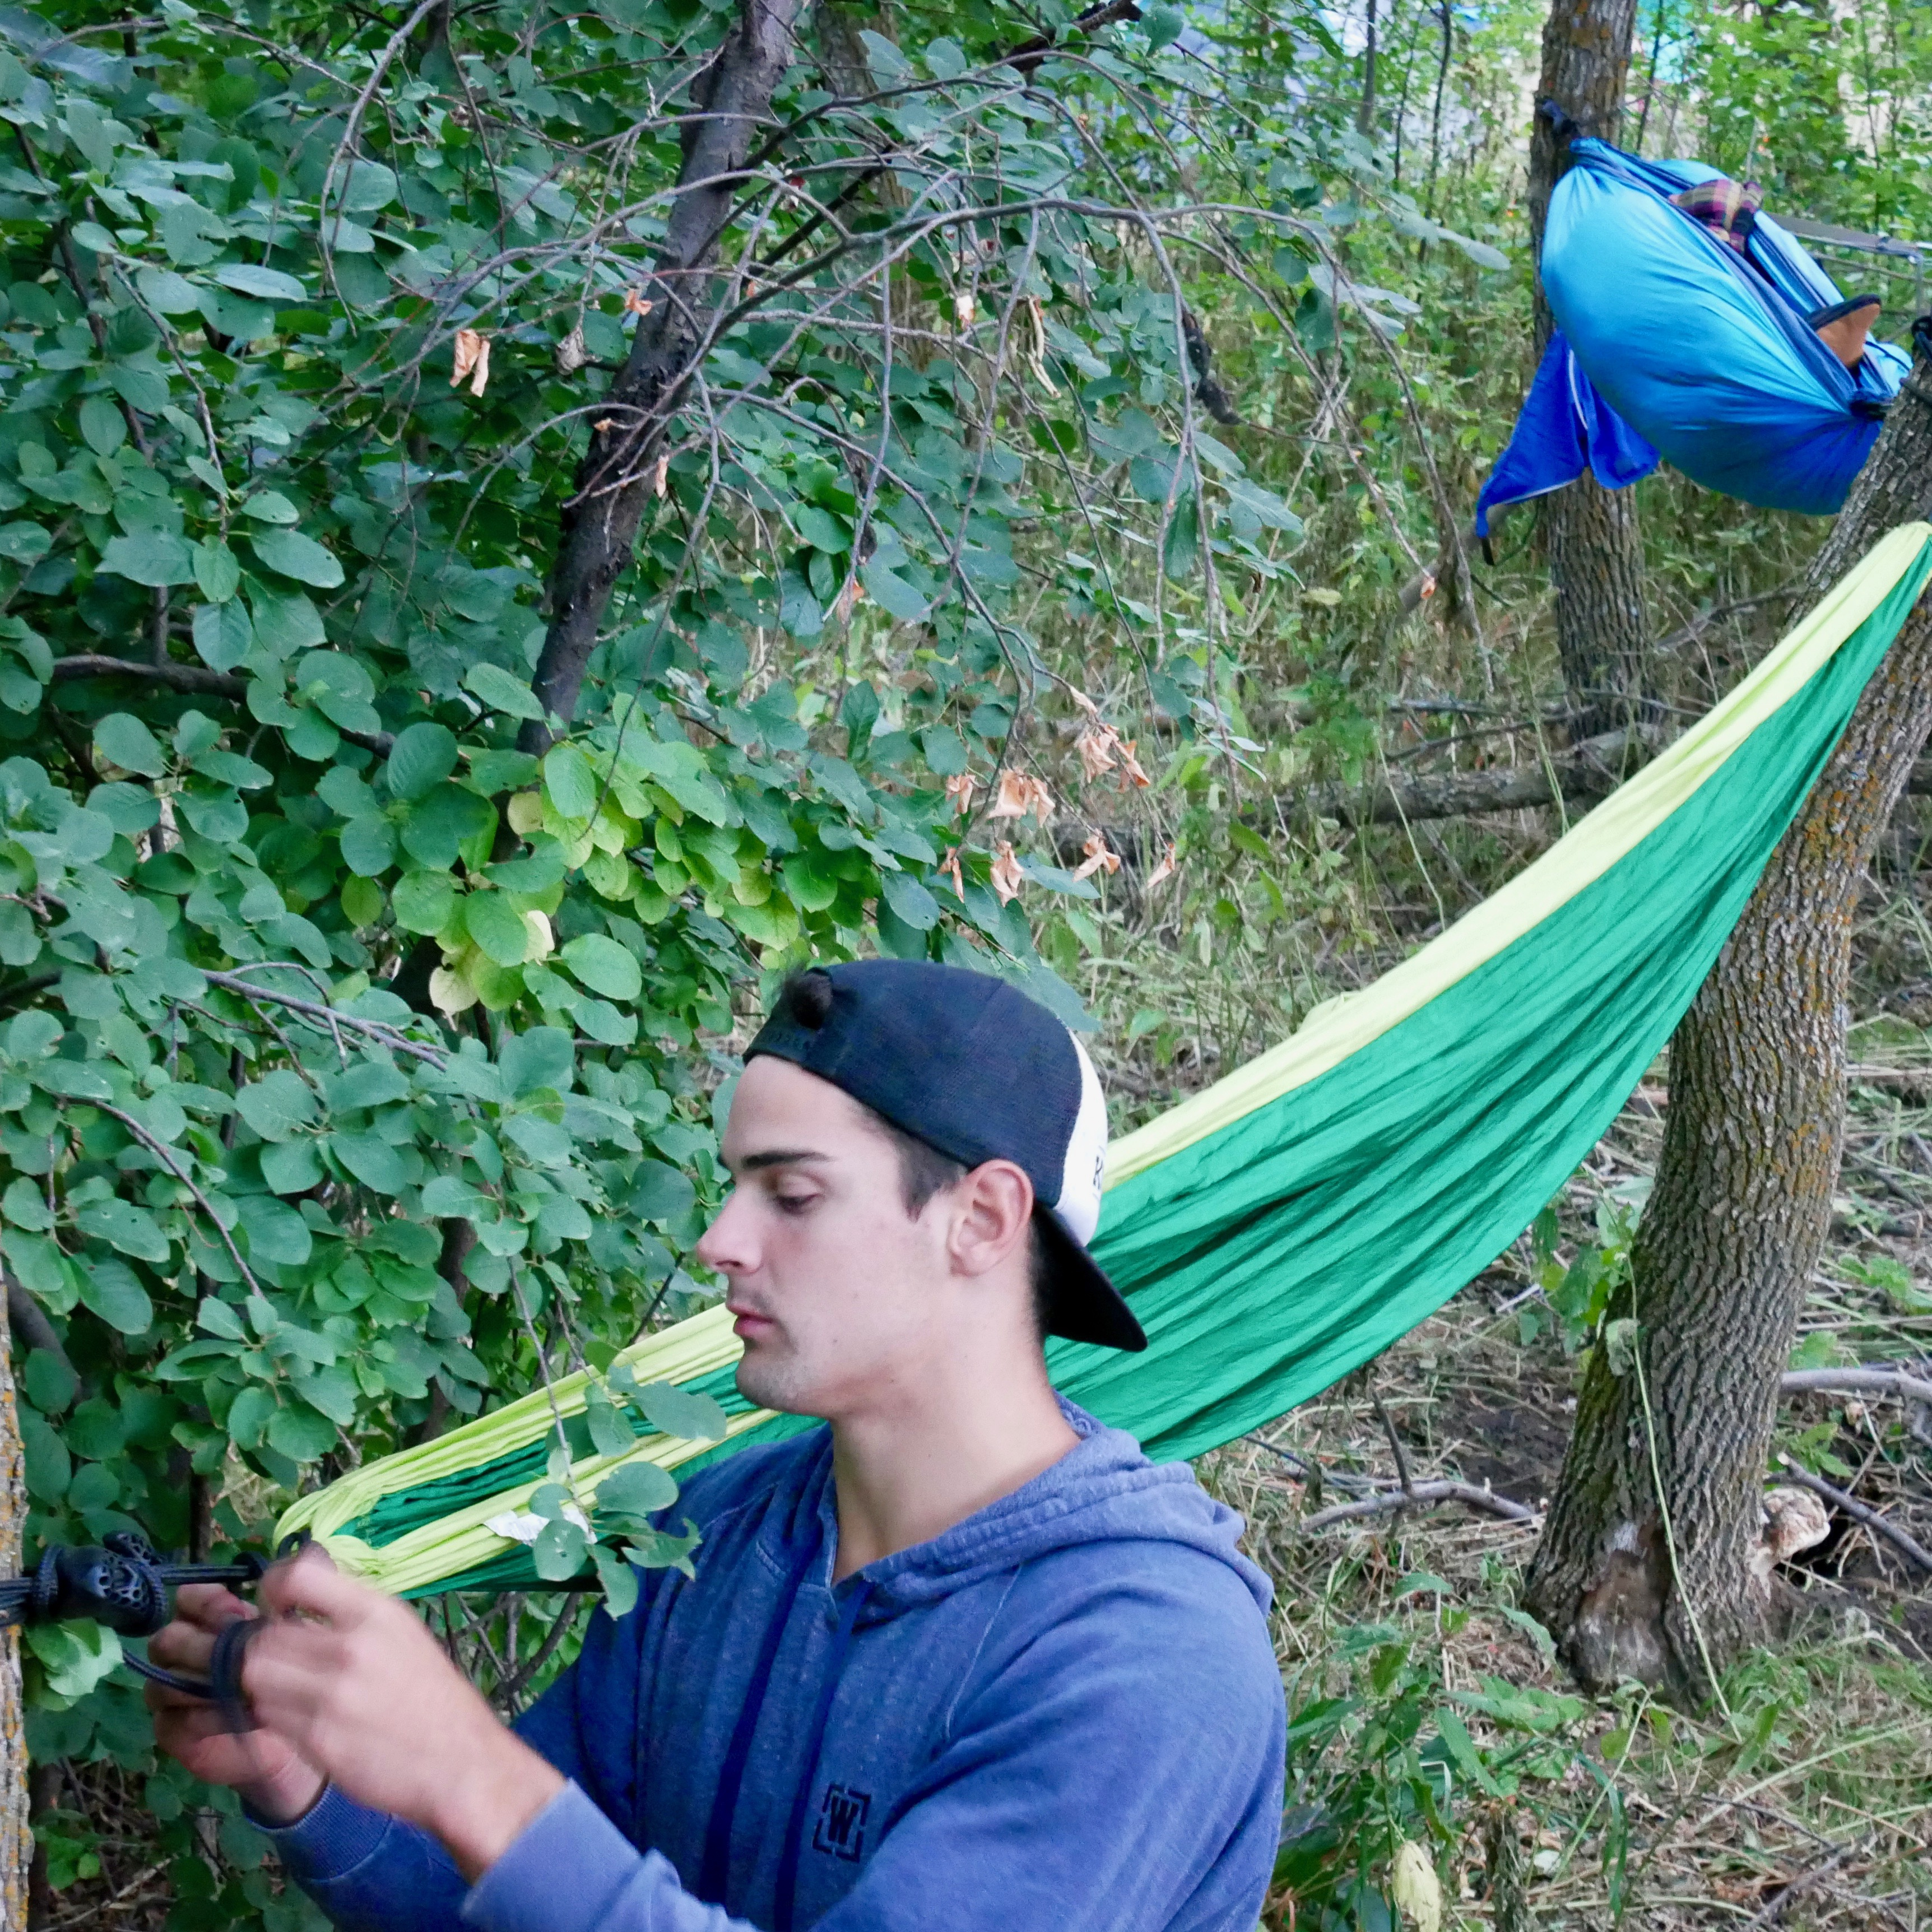 room camping mosquito tent dining travel tarp person double hammocks hanging equipment tree cheap and net fly rain waterproof cooking popular best with hammock